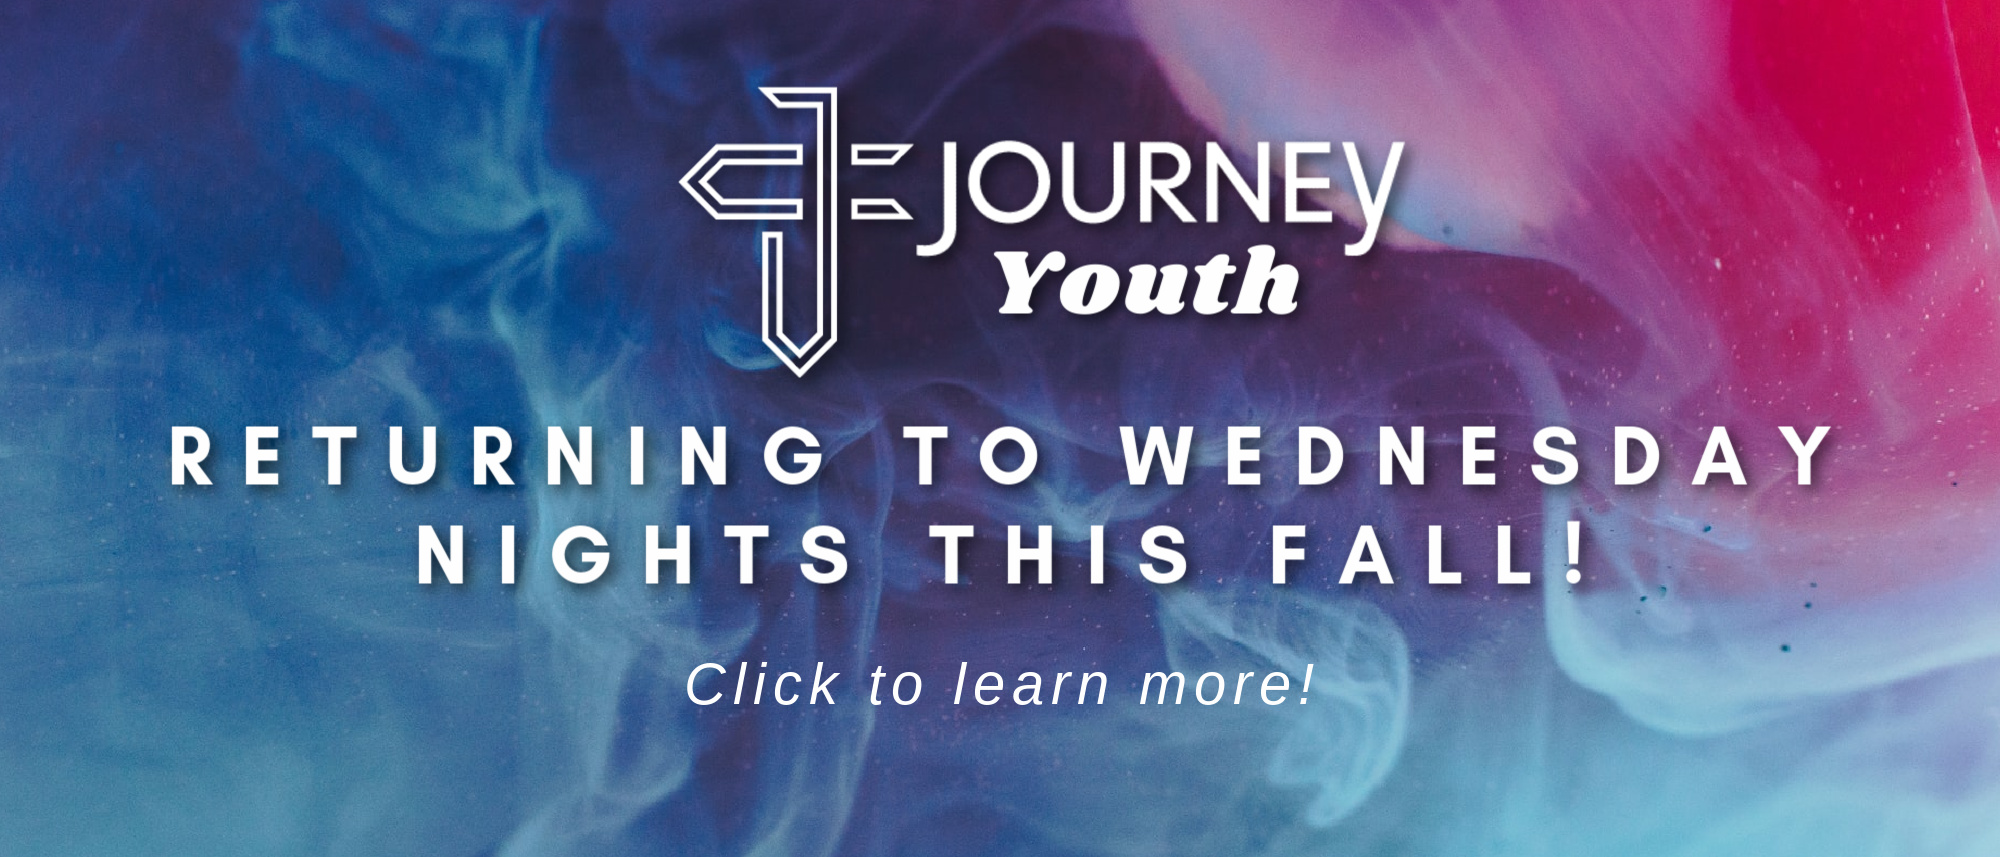 Journey Youth is coming back on Wednesday nights starting this fall! 2021-2022 school year.